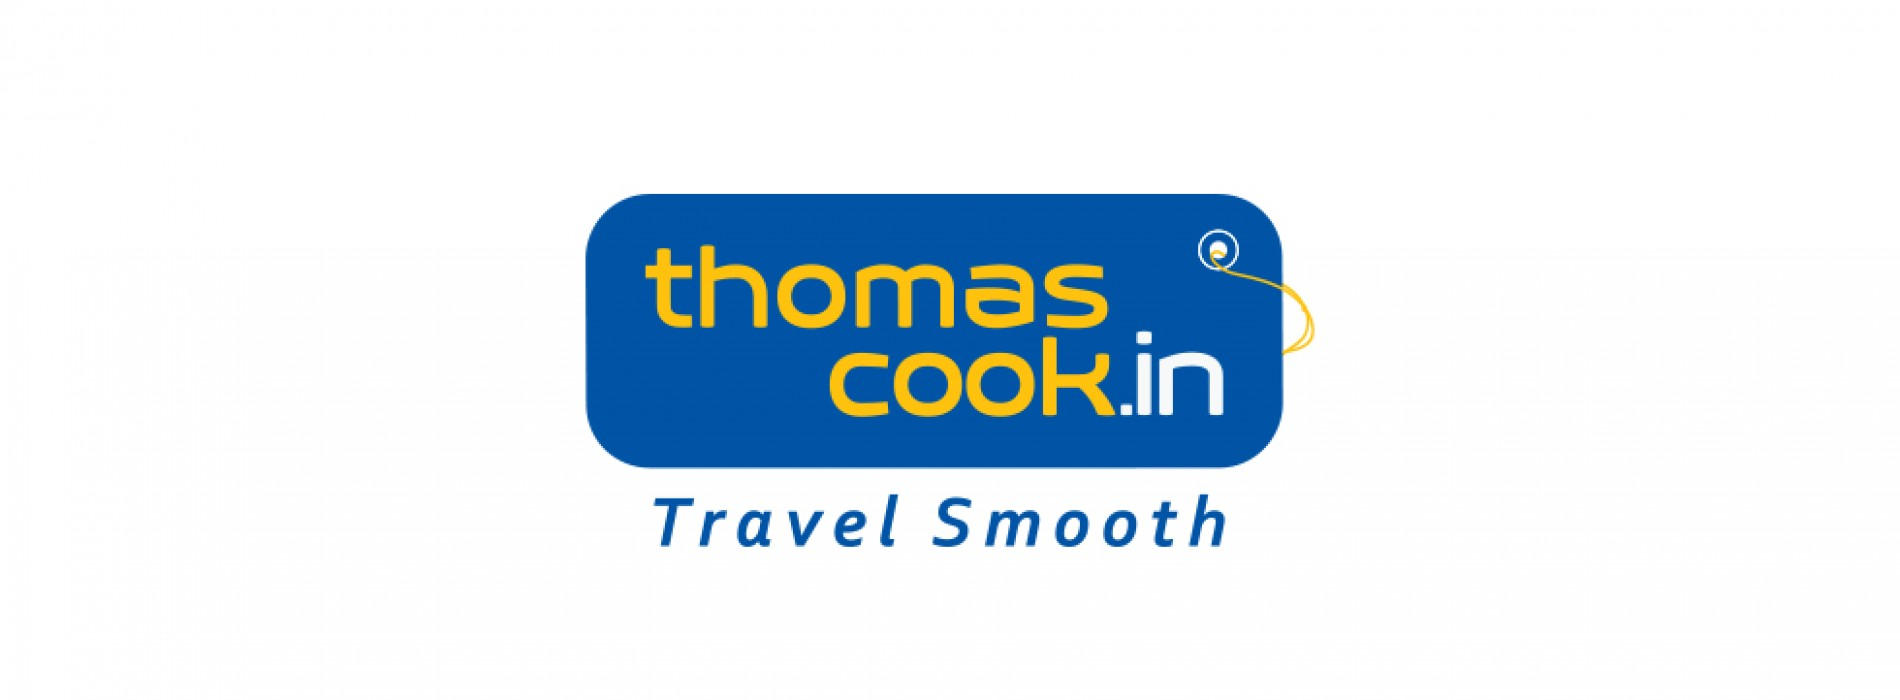 Thomas Cook (India) Limited announces strong consolidated results for the year ended March 31, 2017